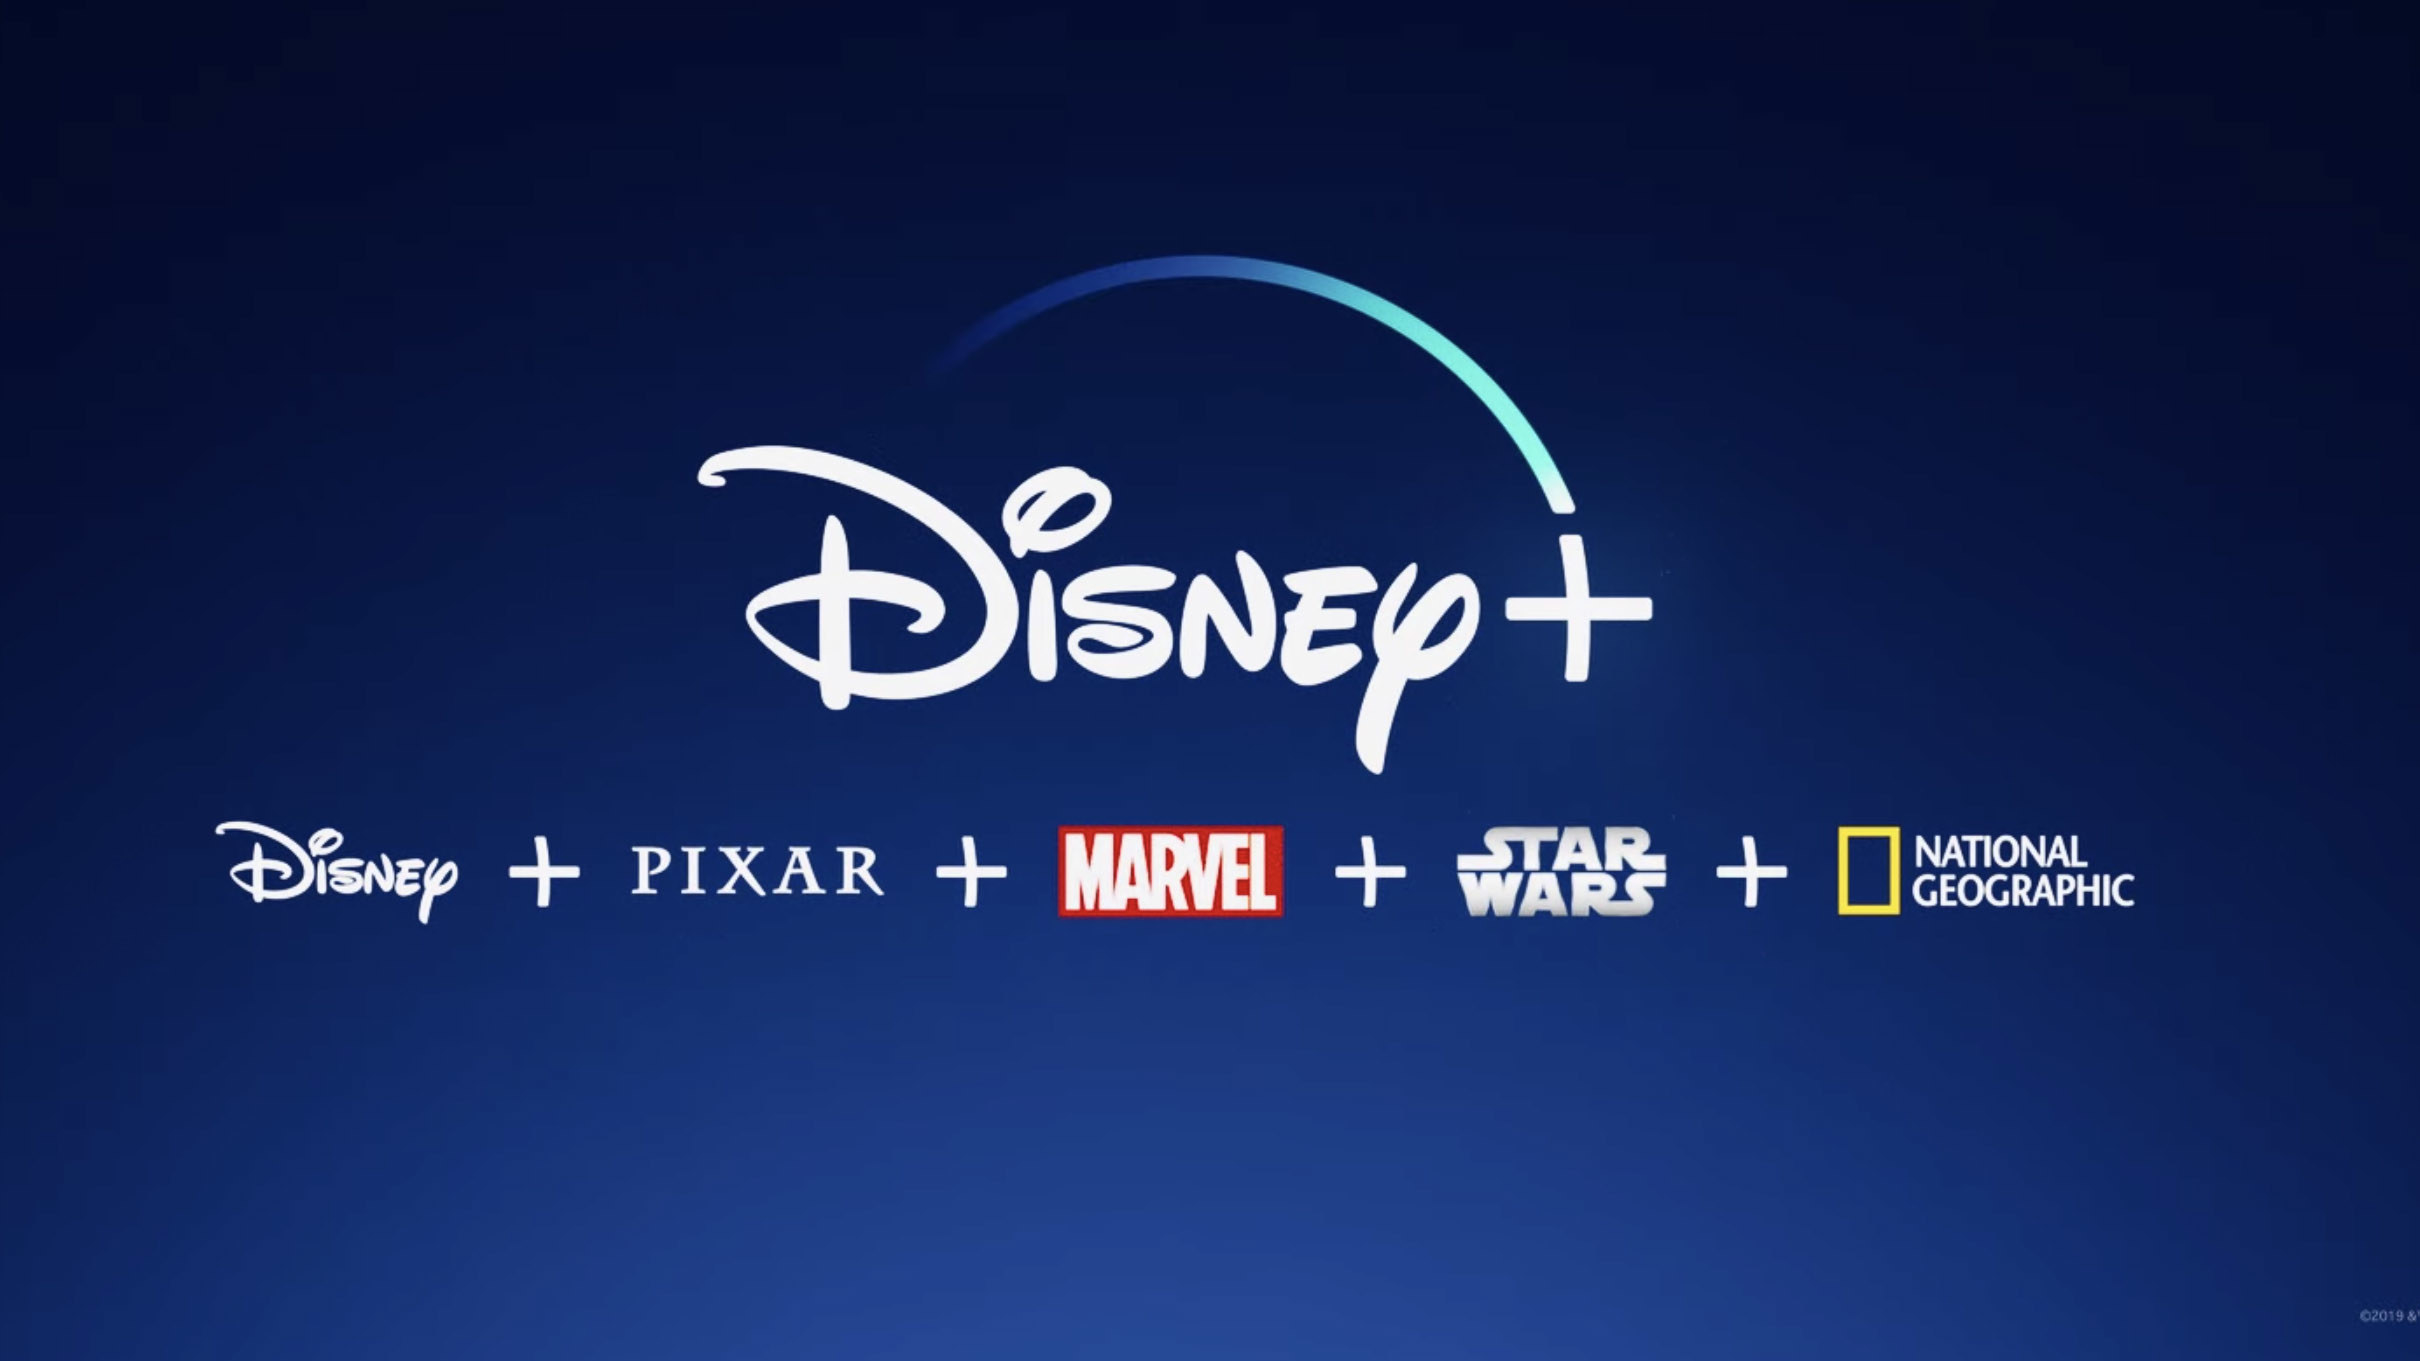 Disney Plus includes Pixar, Marvel, Star Wars, and National Geographic